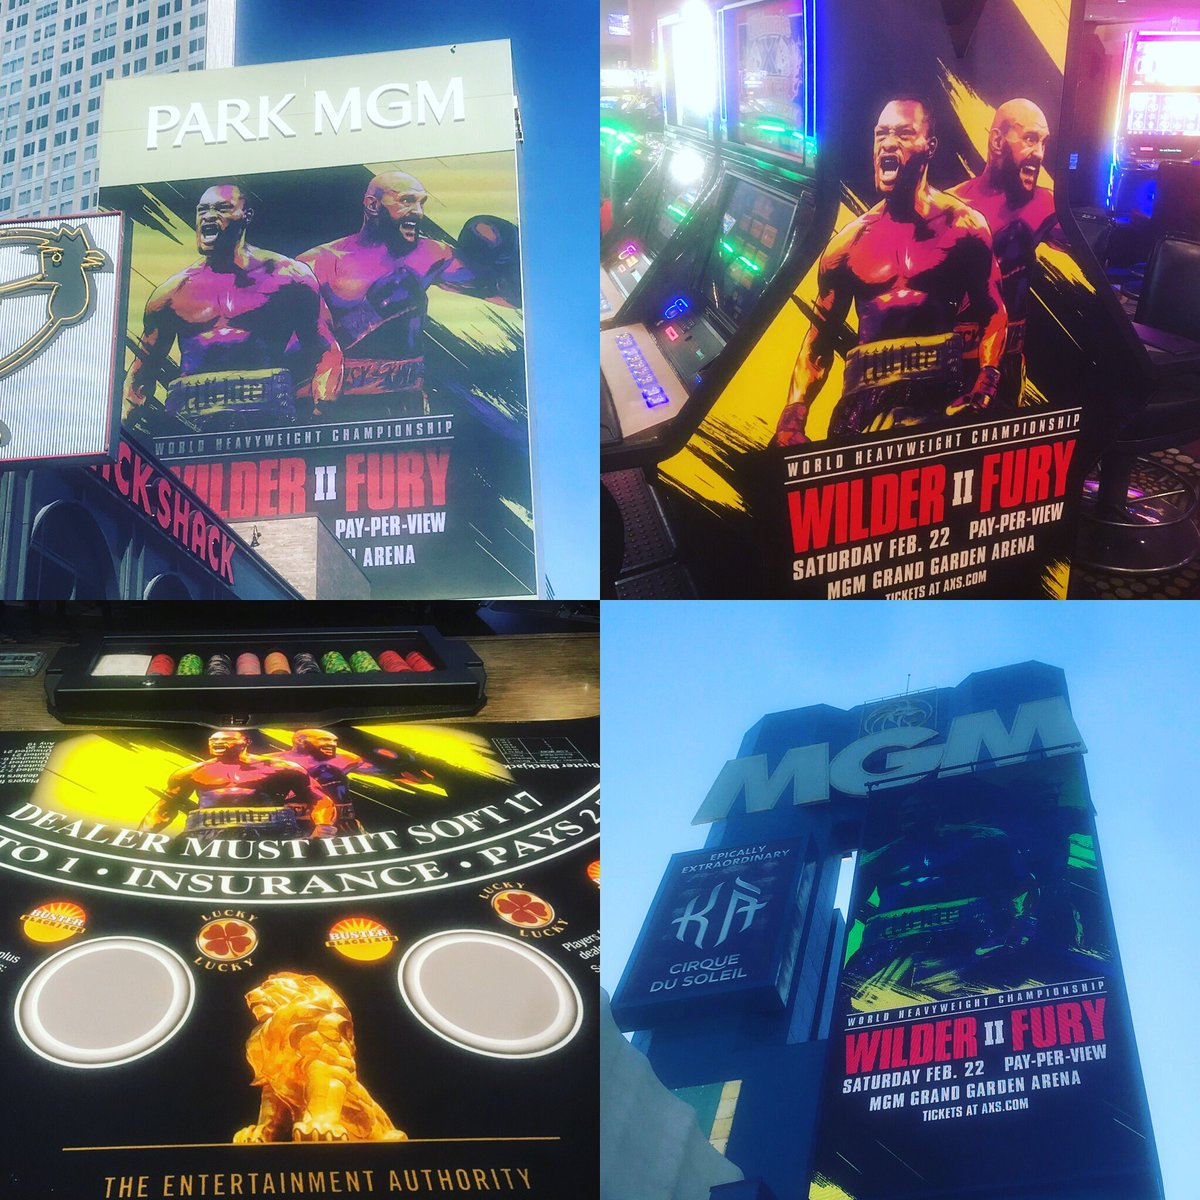 All in for #WilderFury on the Las Vegas strip and tables. Tonnes of content coming on BBC Sport including today's long read on the three minutes that got us here: http://www.bbc.co.uk/sport/boxing/51501533… #boxing